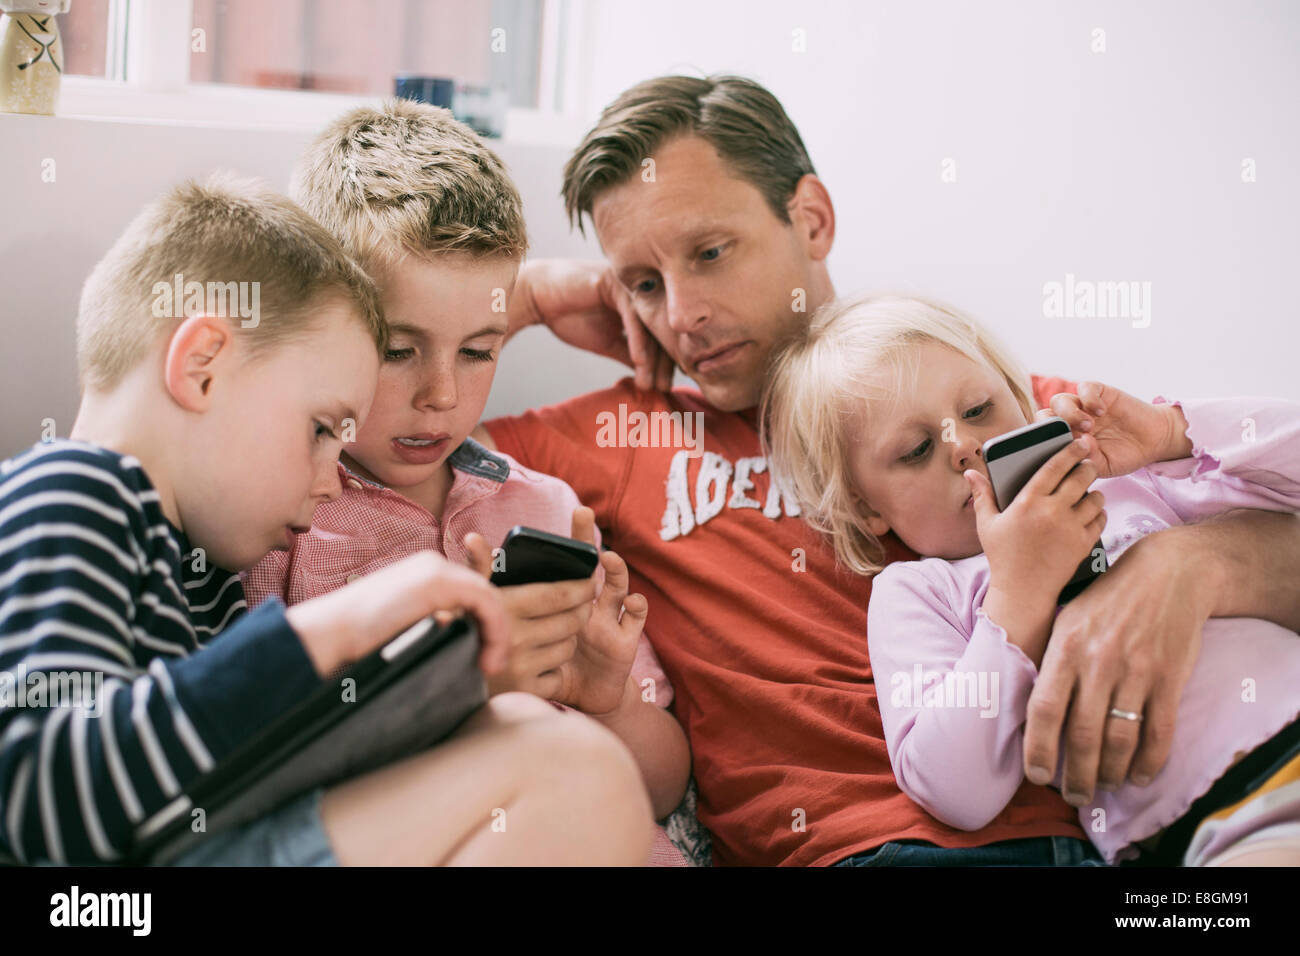 Father and children using technologies at home - Stock Image